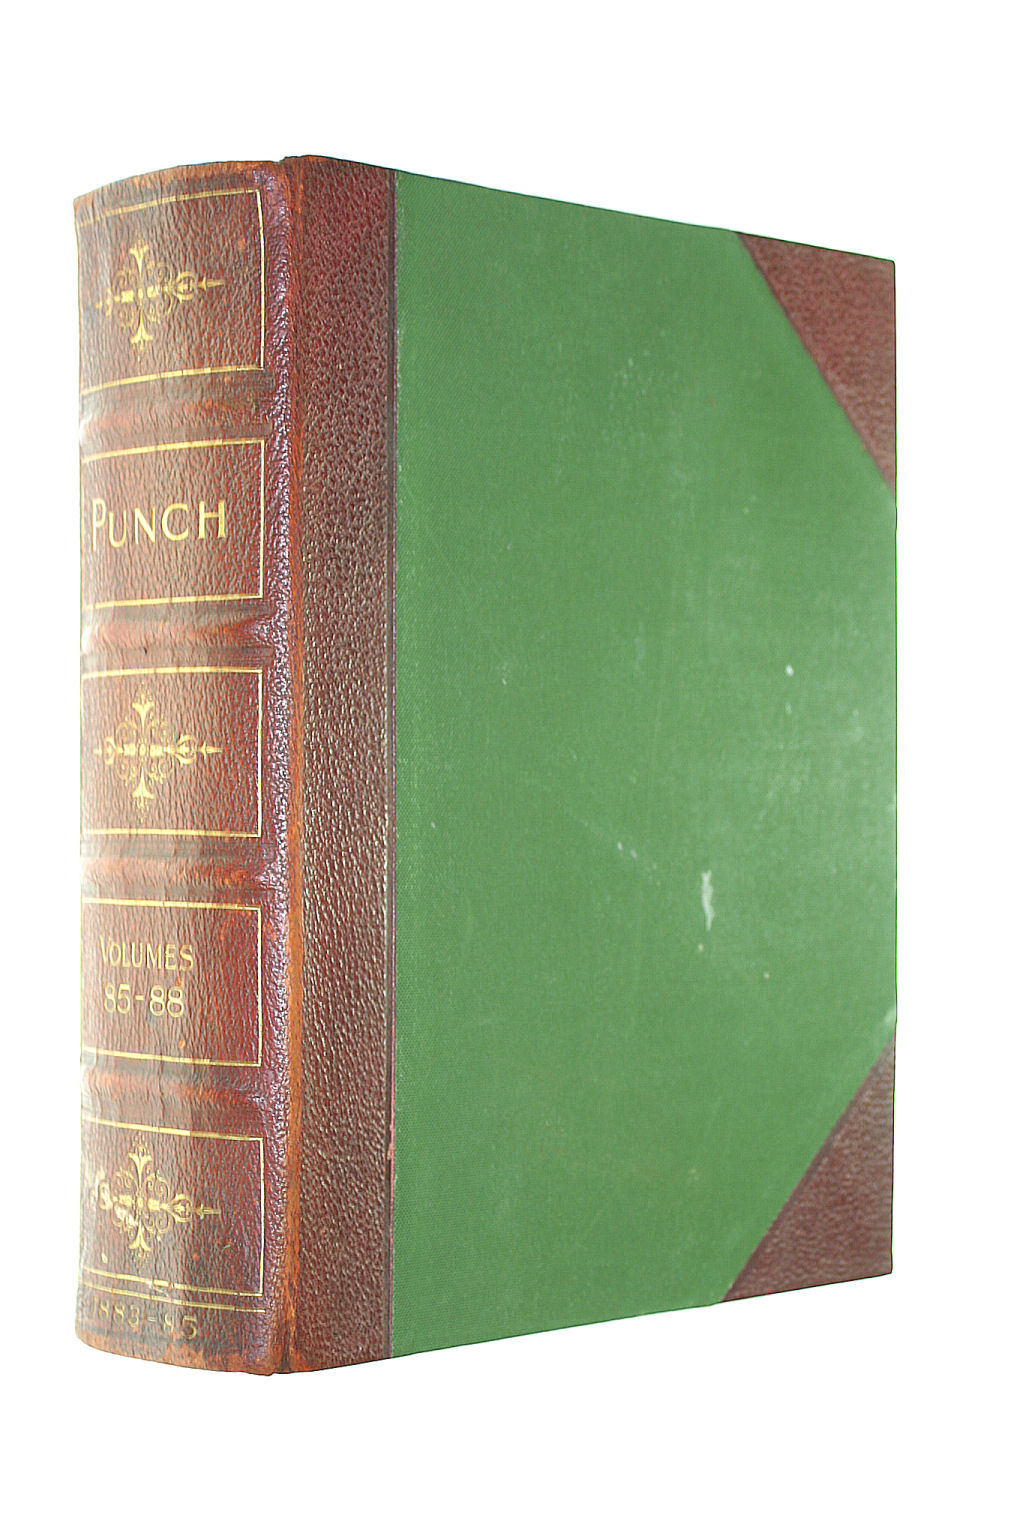 Image for Punch, Or The London Charivari. July 1883 - June 1885. Volumes 85-88. Half-Leather Cover